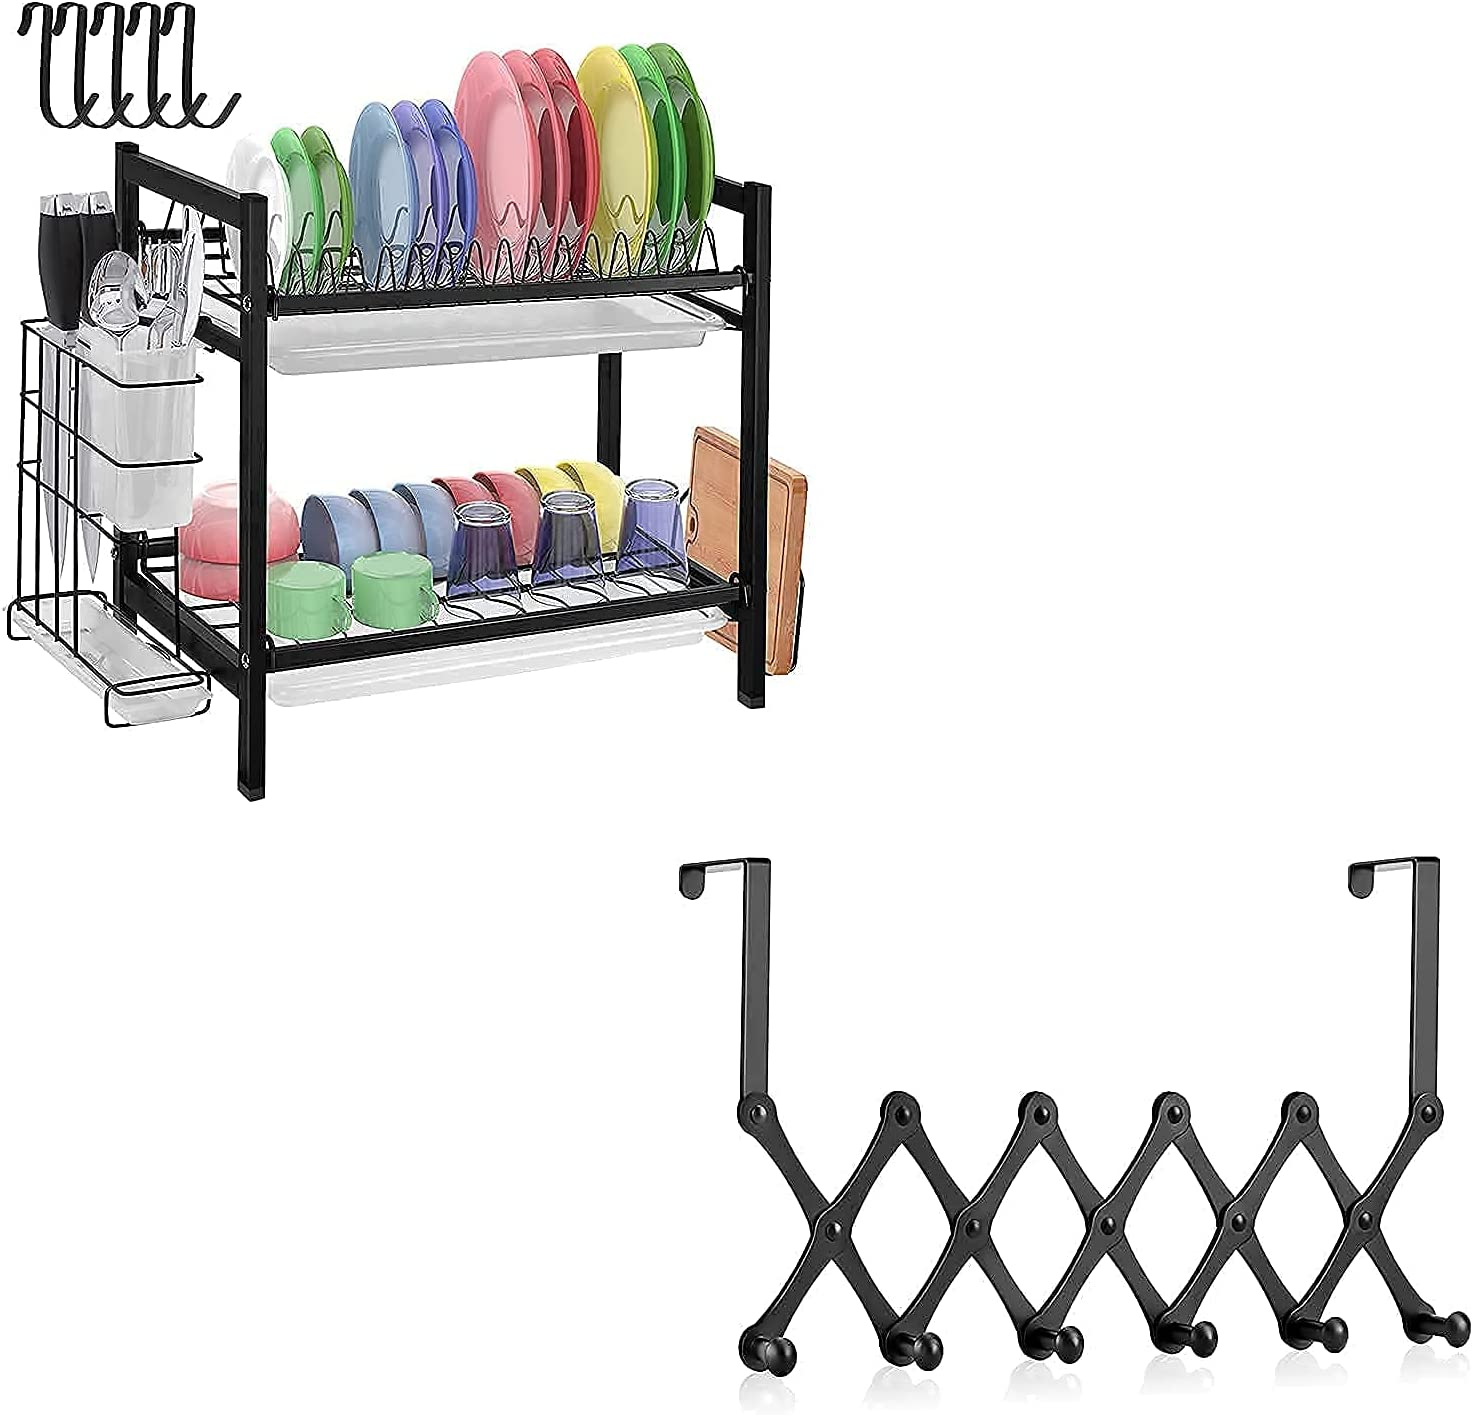 Aifacay 2 Tier Dish Drying Rack Gifts + Hooks 1 Door Over Pack Fees free The